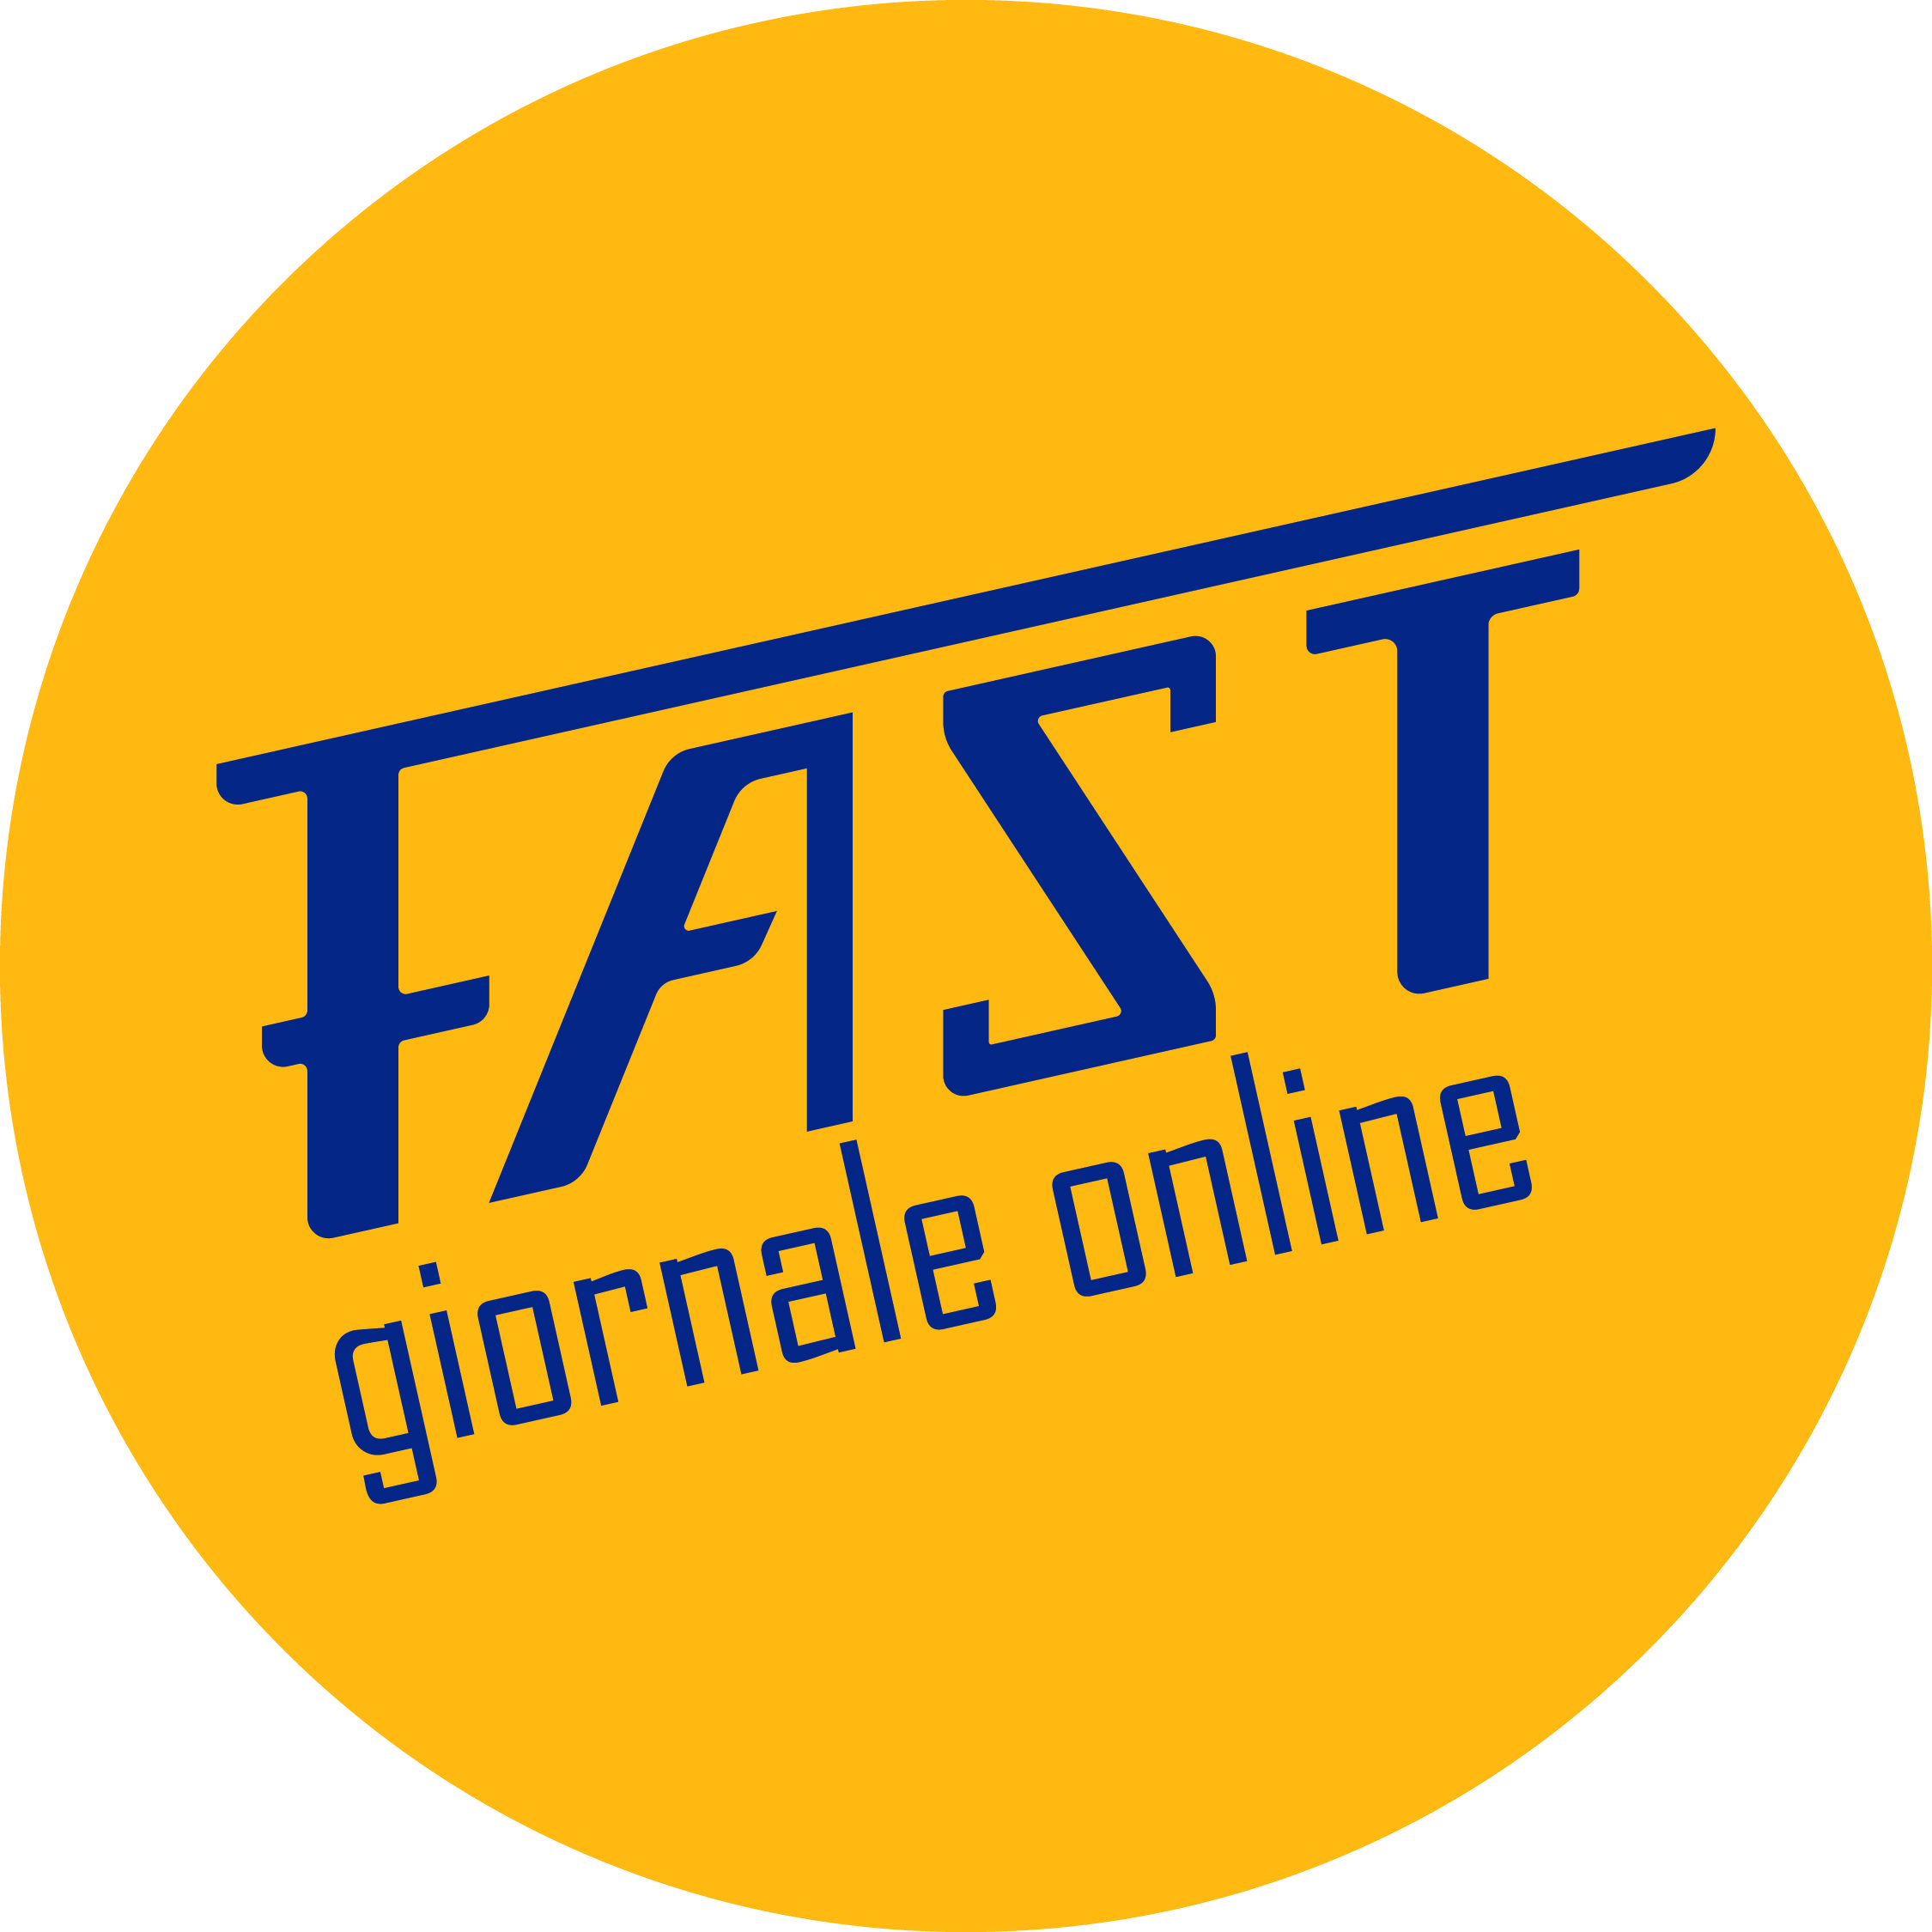 Fast – giornale online